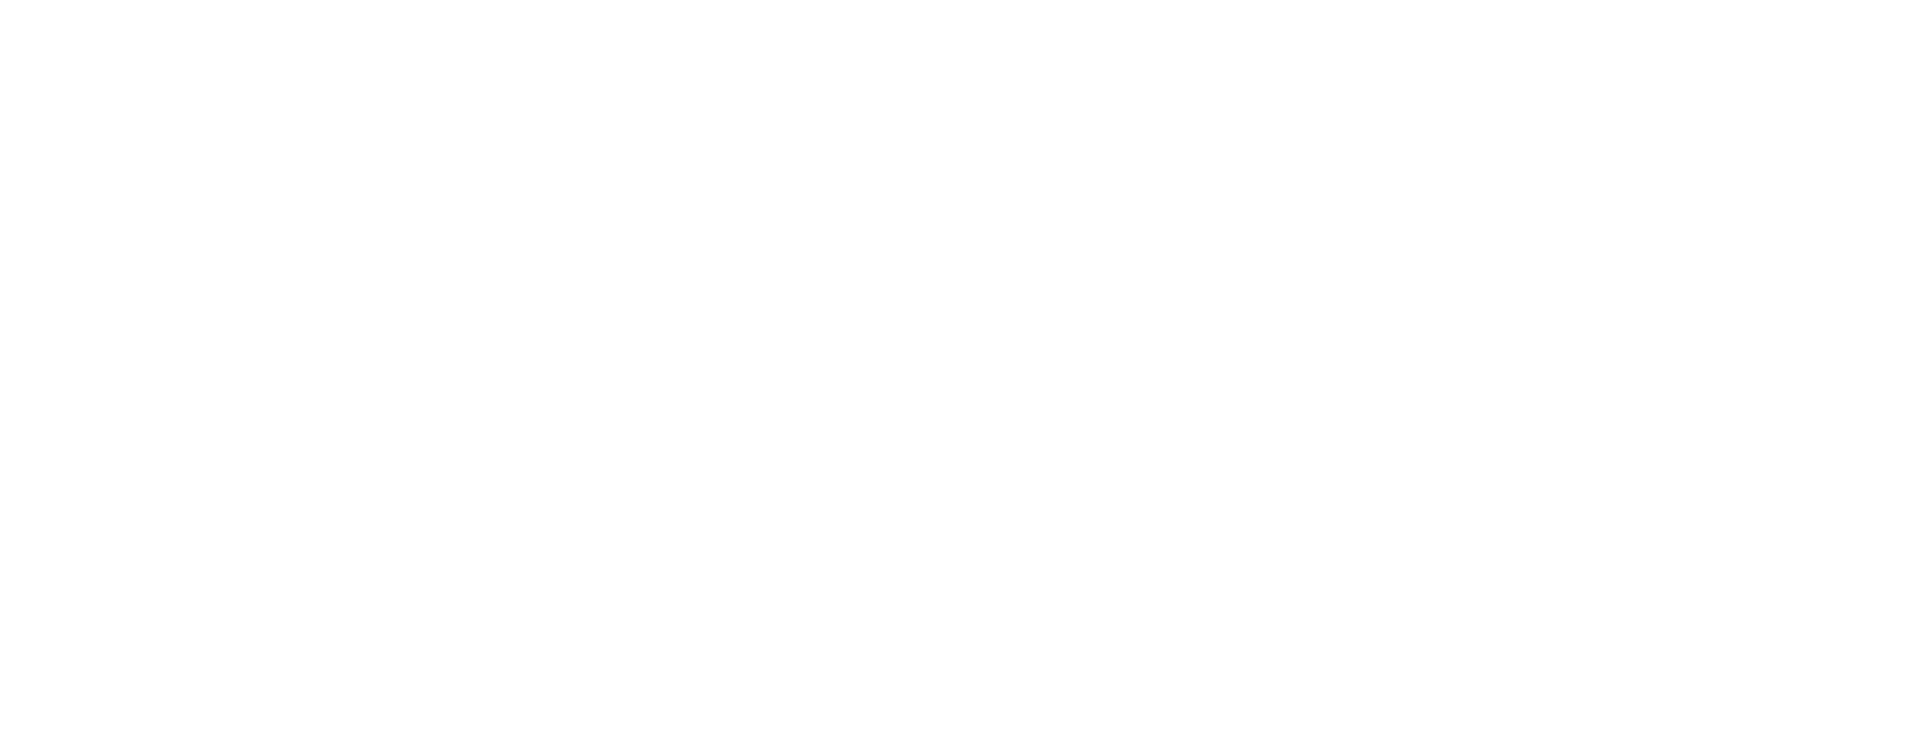 Section Title: Great Sponsors